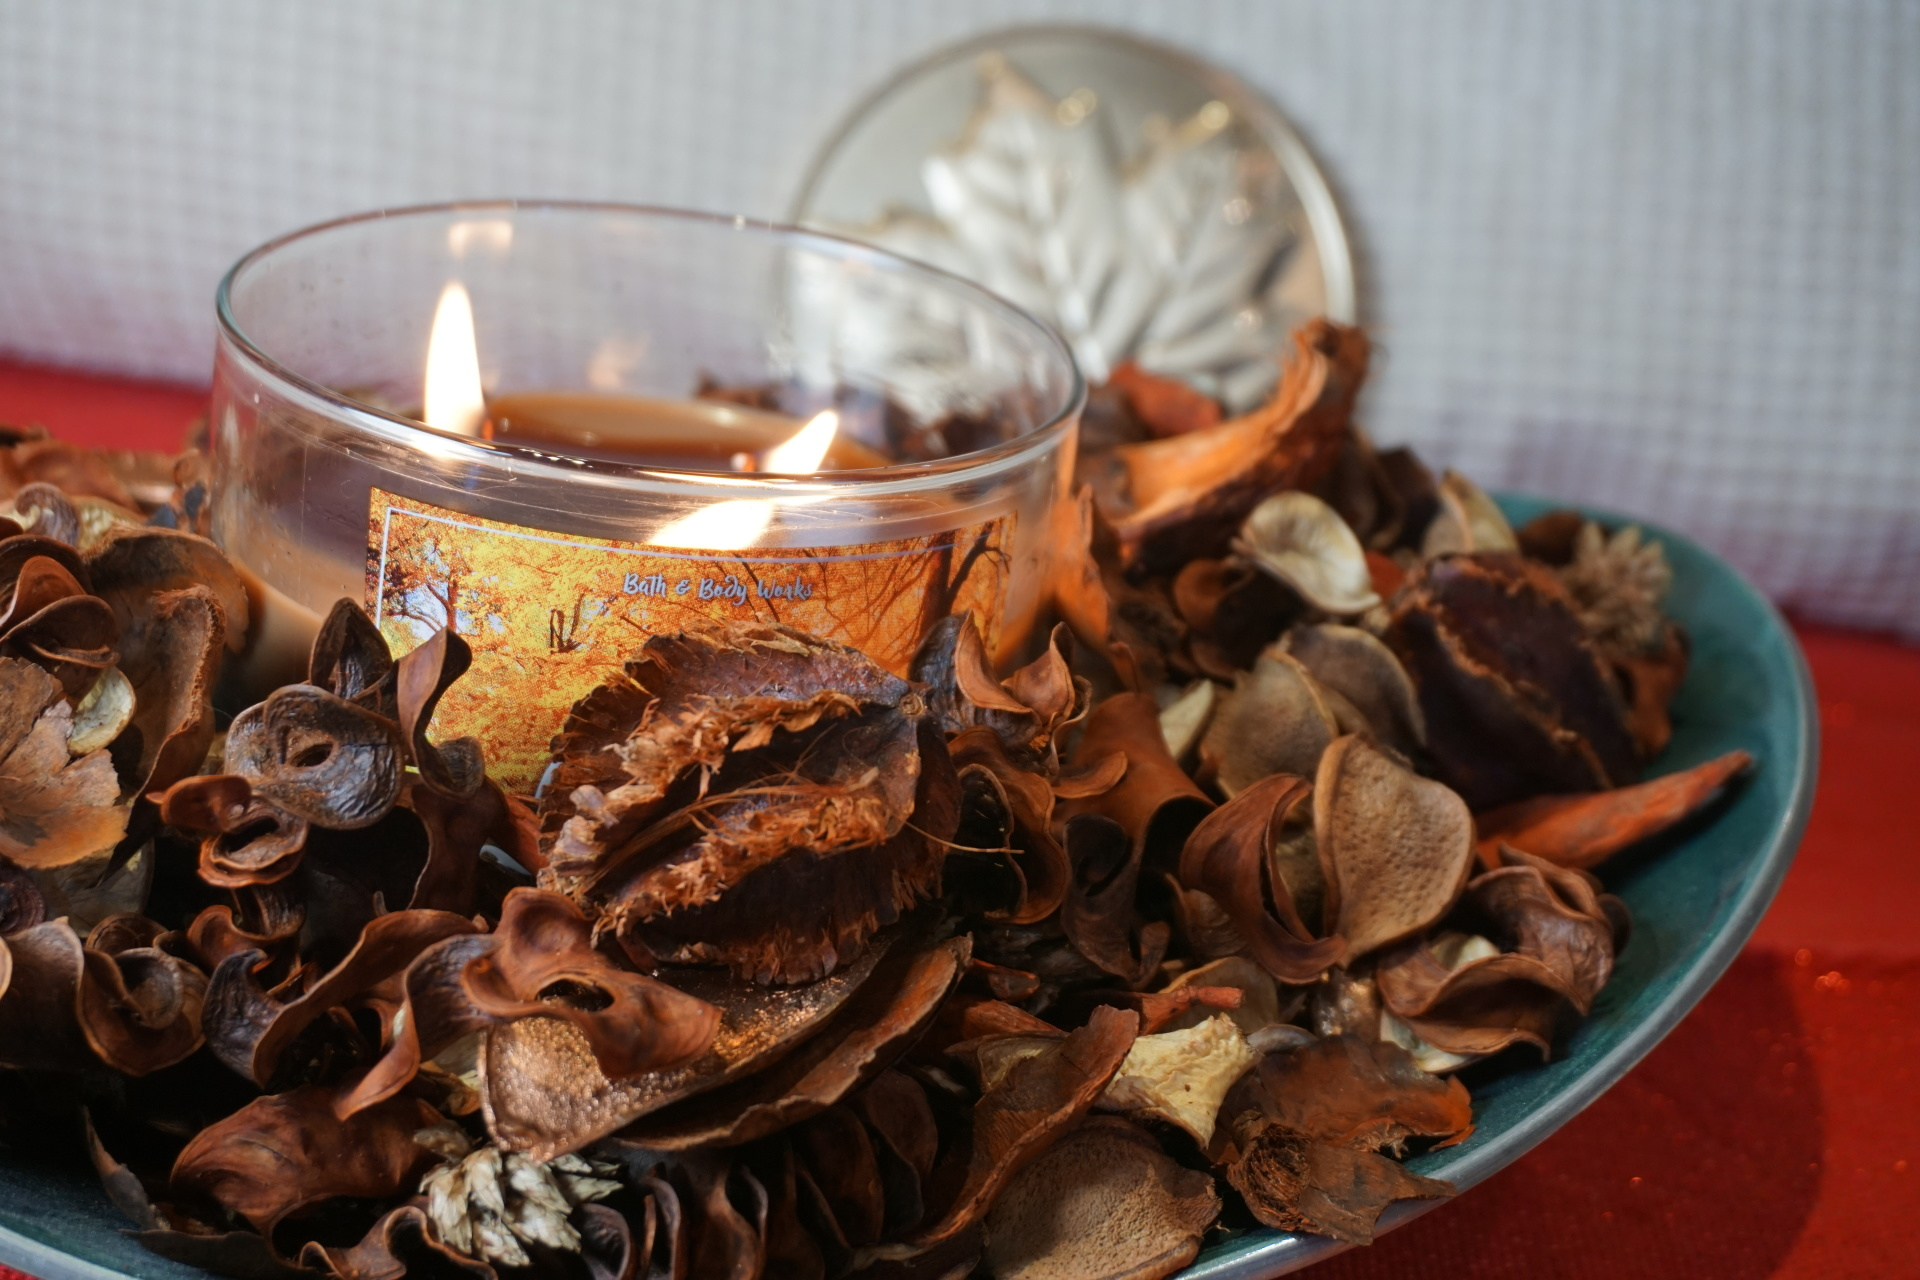 Places to buy gorgeous Candles